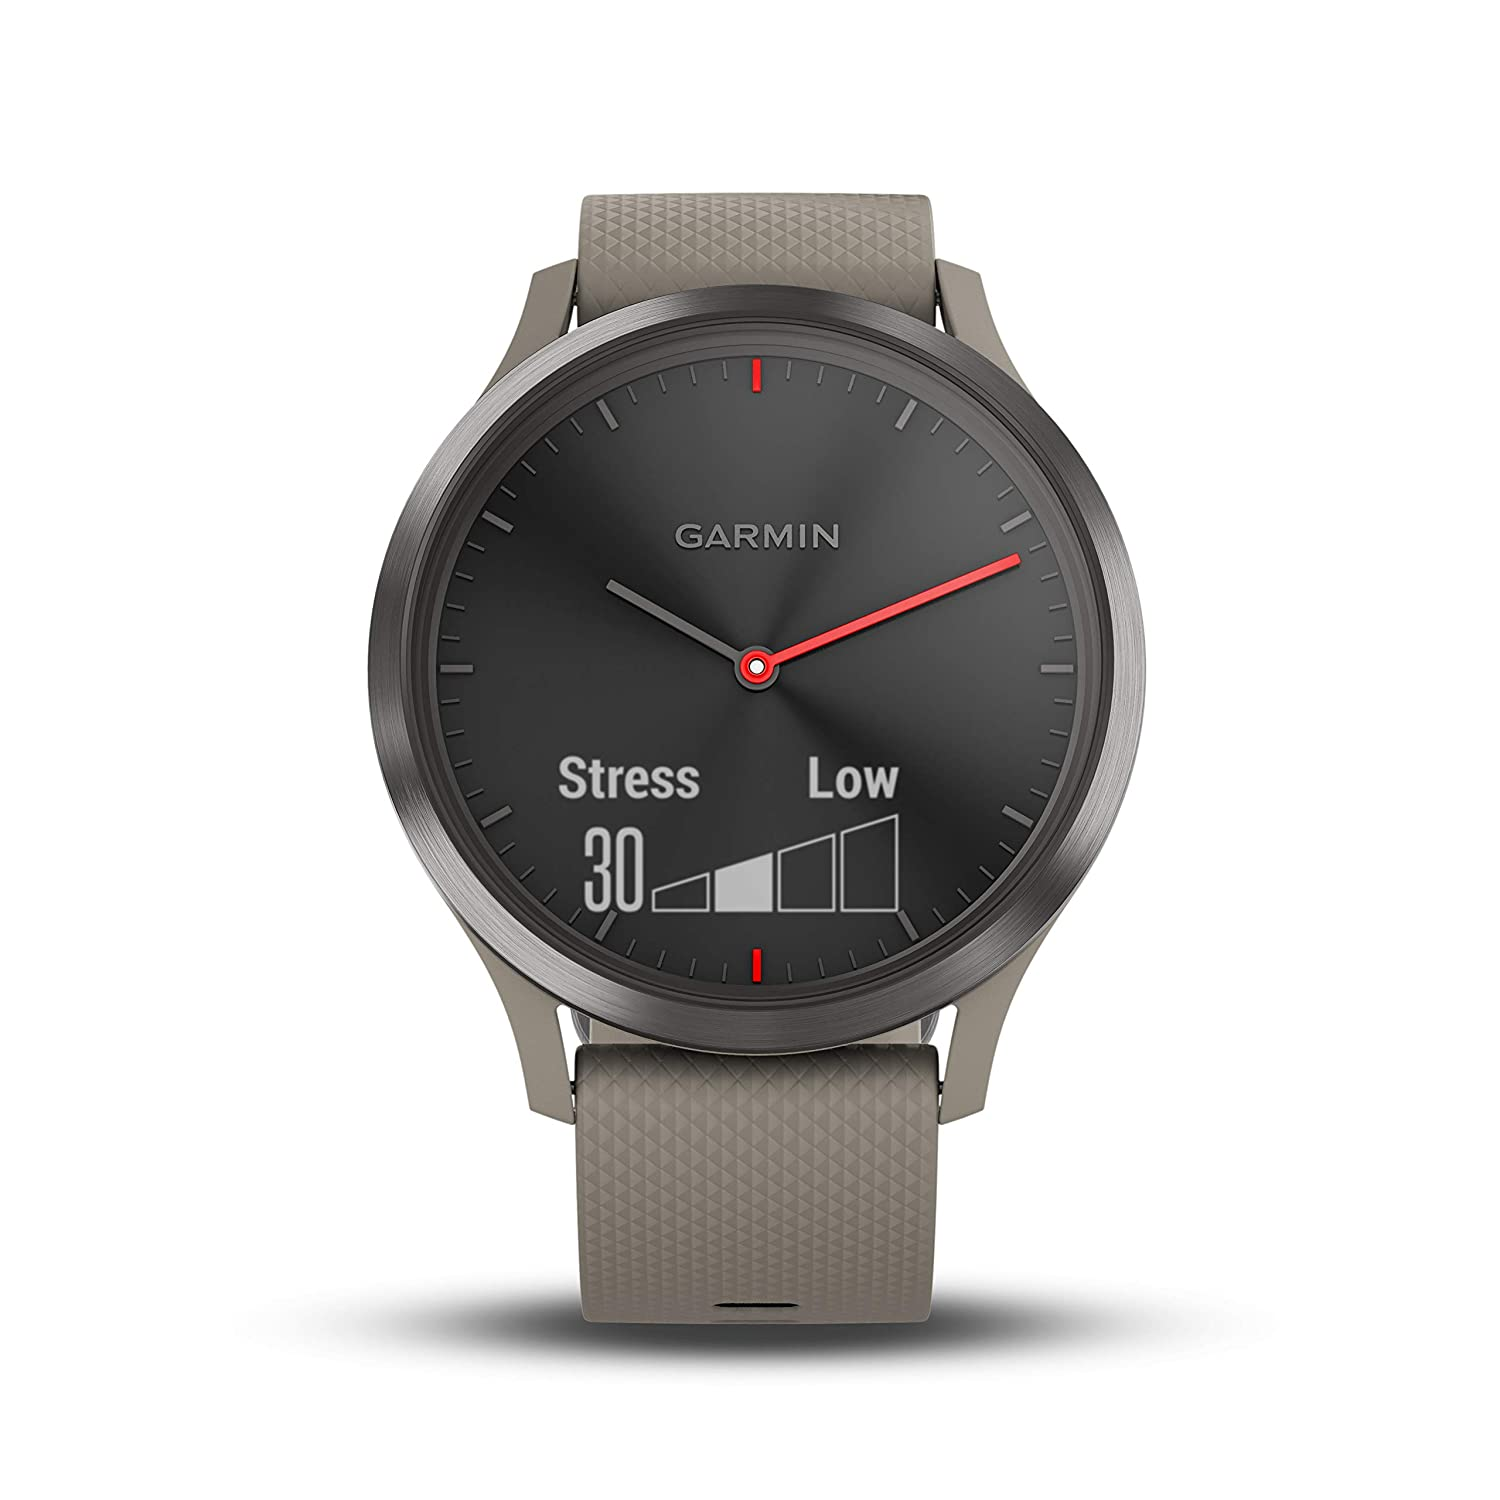 Garmin vívomove HR - Montre Connectée Hybride Élégante avec Écran Tactile: Amazon.fr: High-tech